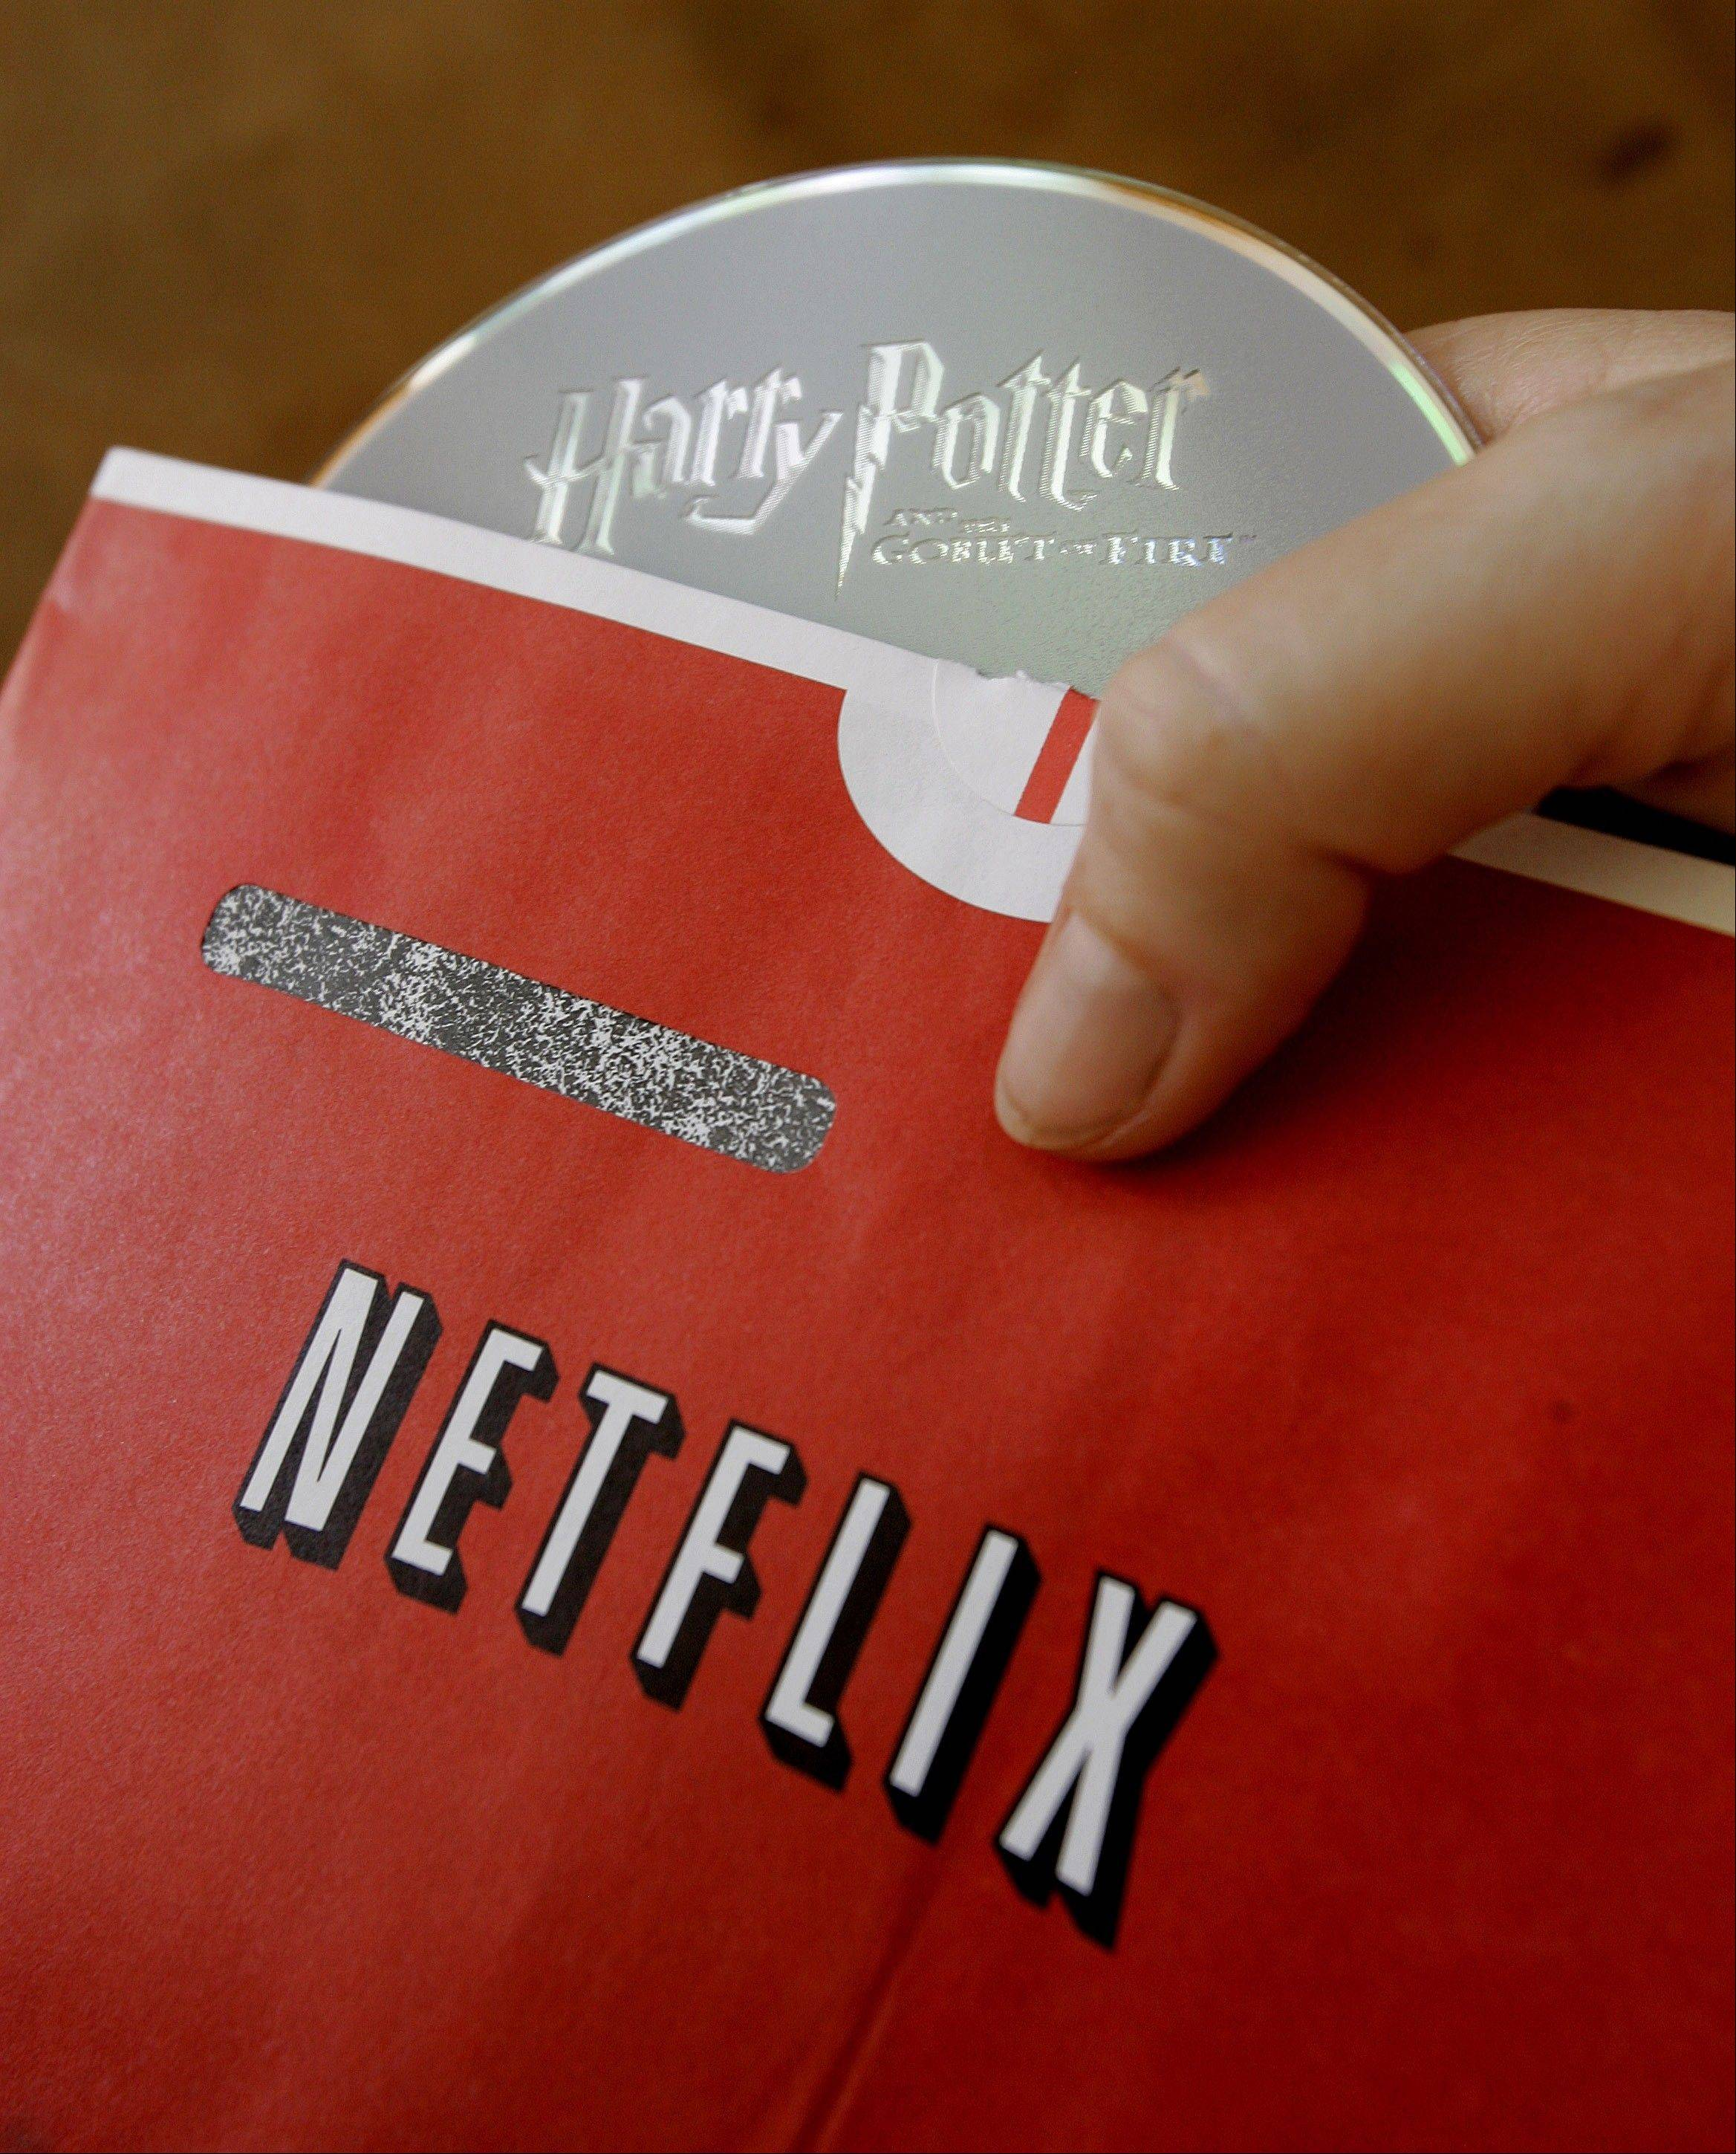 A year after price hike, Netflix still struggling